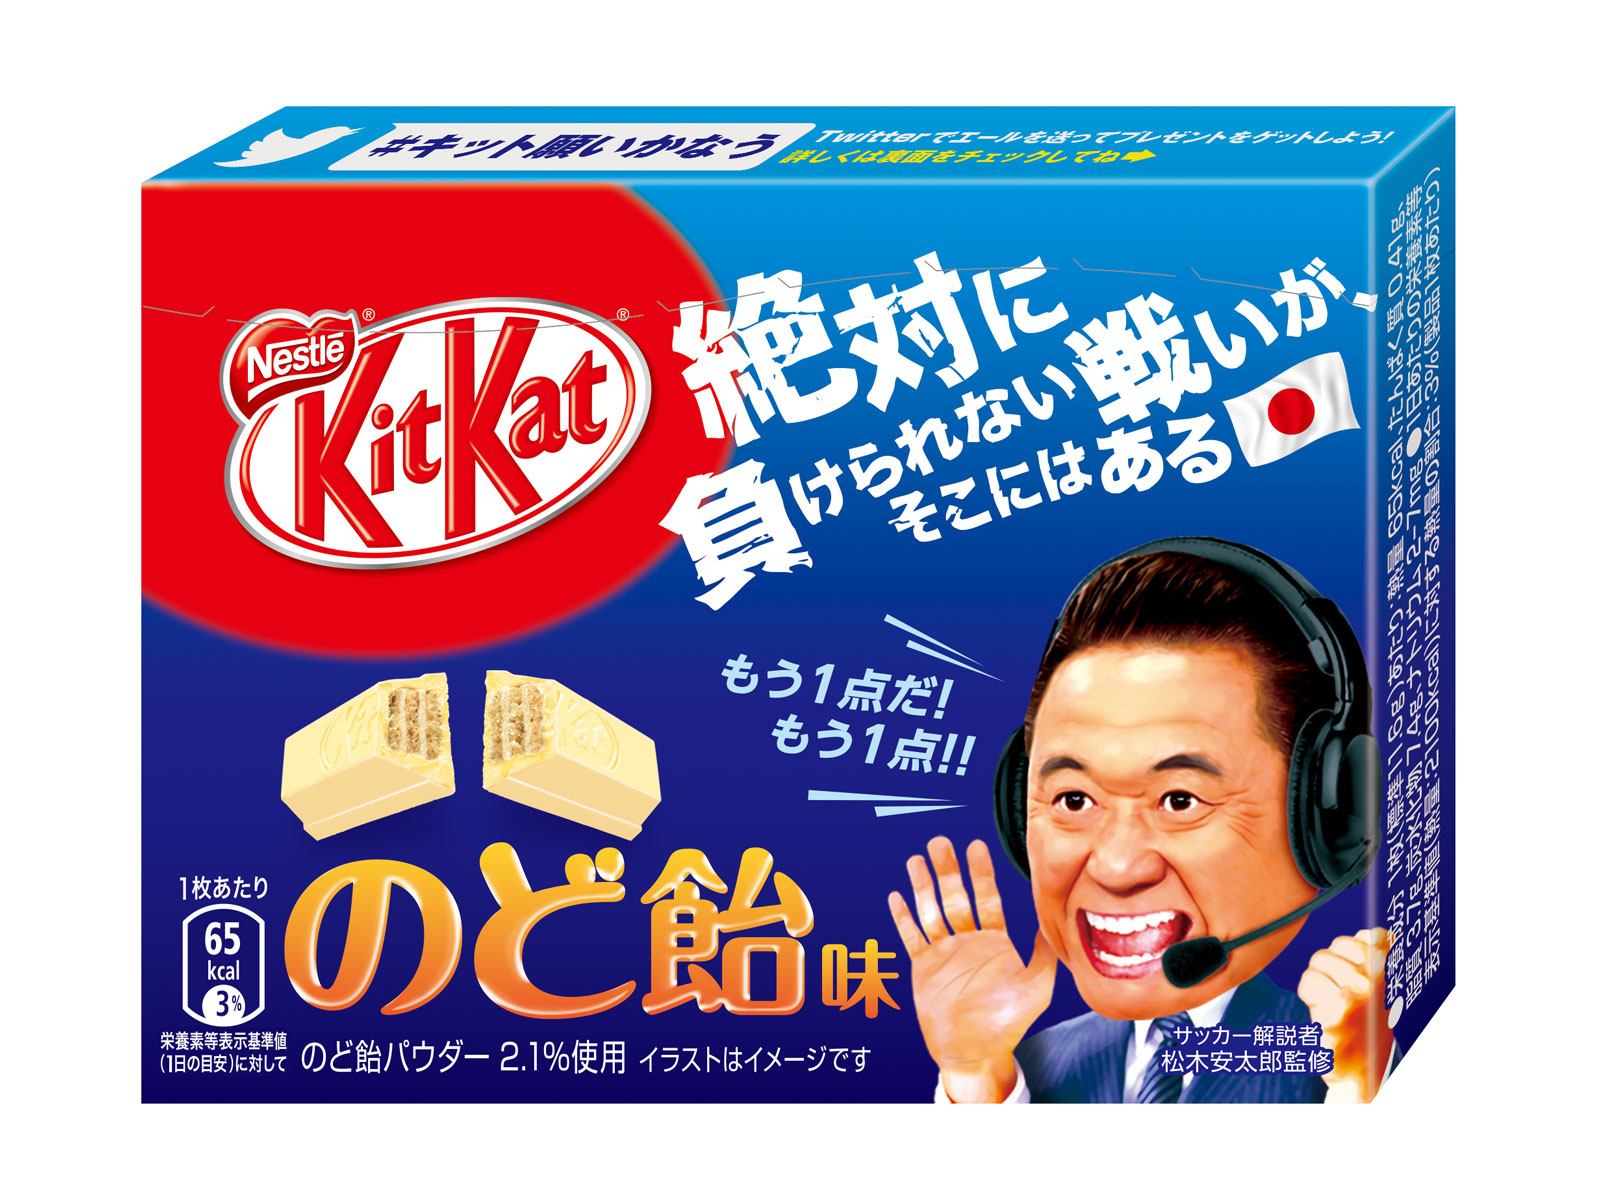 Cough Drop-Flavored Kit Kats